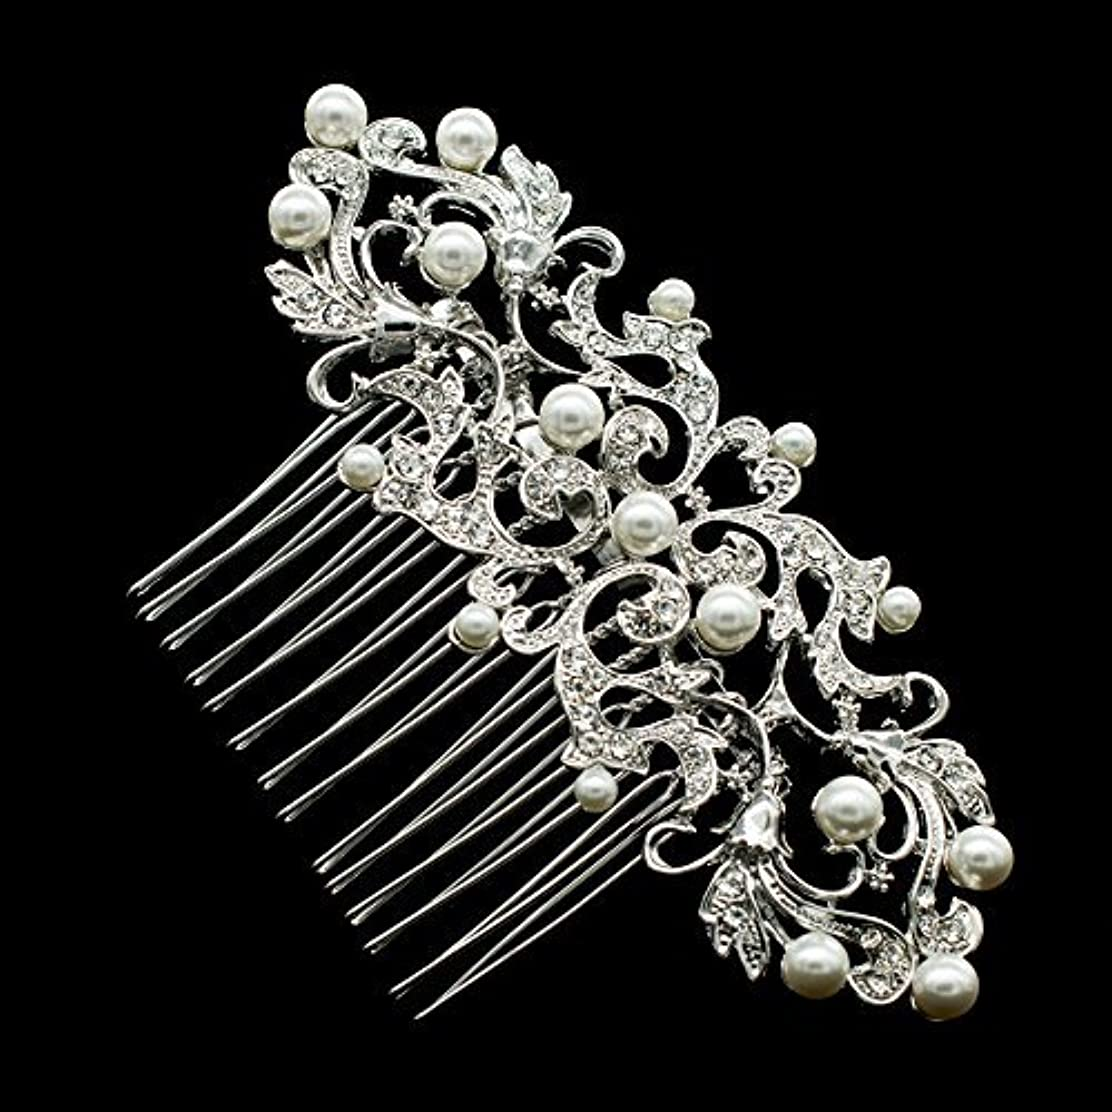 配当だらしない僕のSEP Rhinestone Crystal Wedding Bride Hair Comb Hairpins Jewelry Accessories 2221R [並行輸入品]